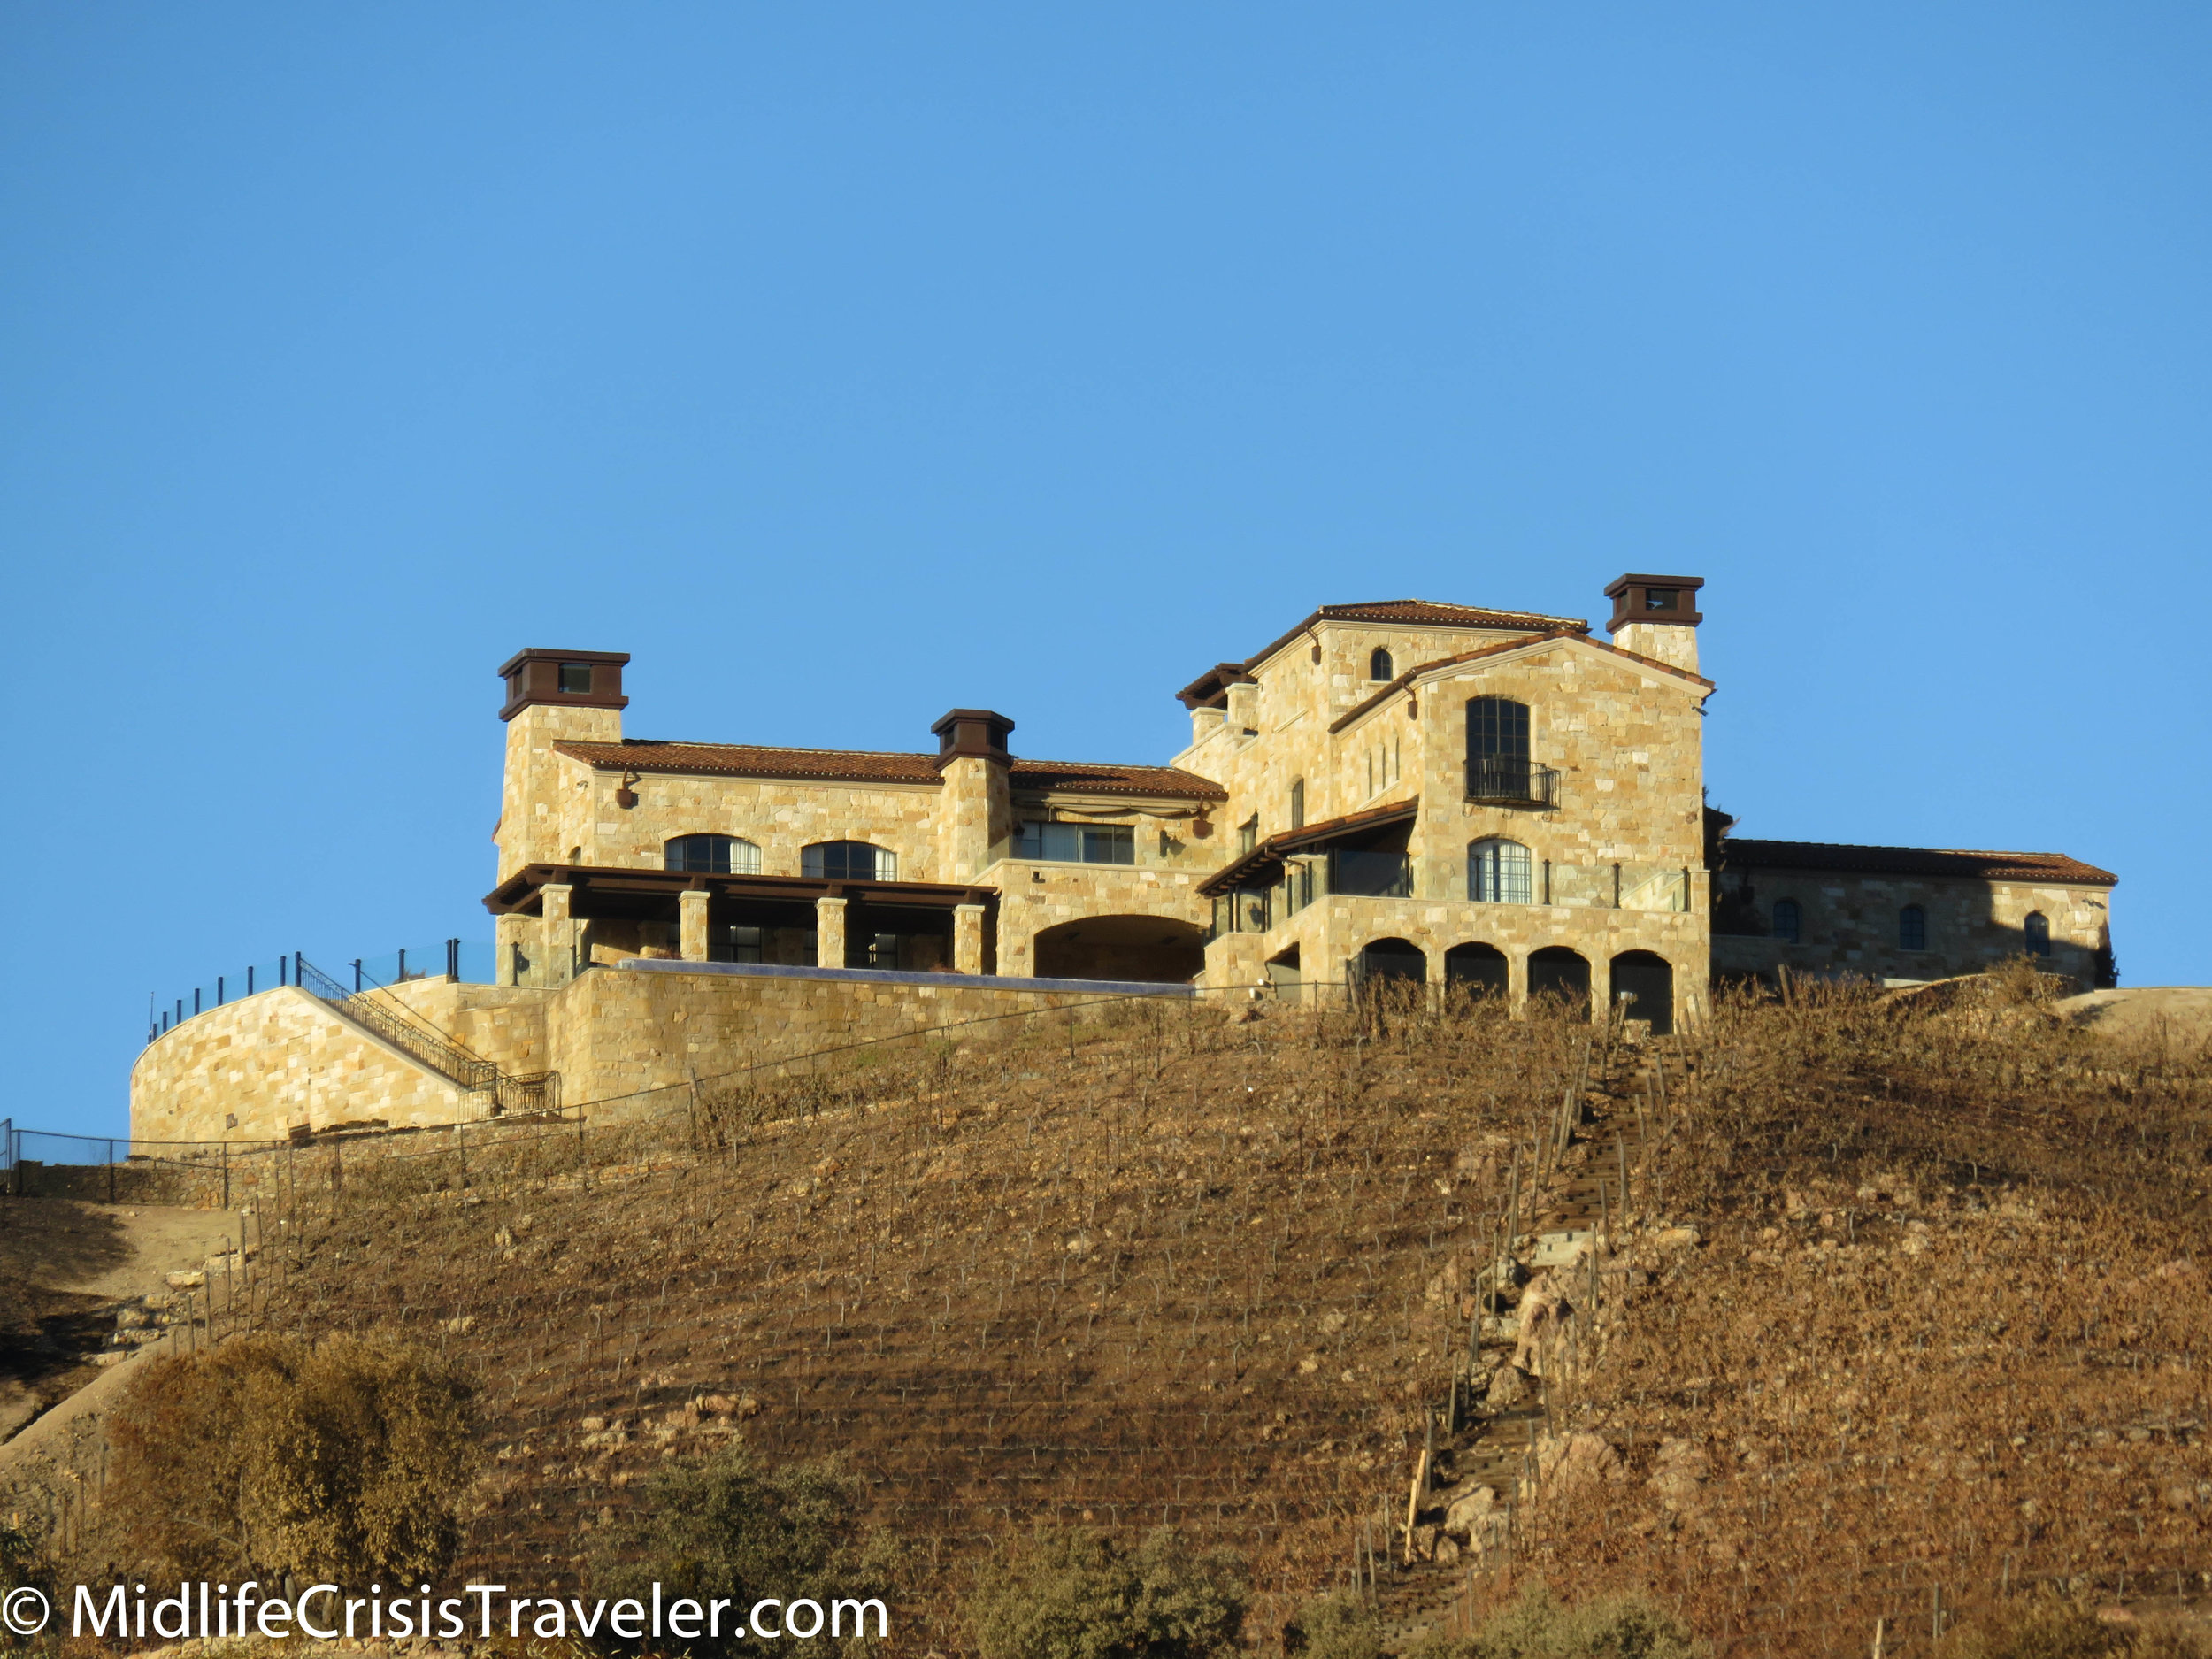 A stone mansion which survived the fires overlooks the mountains.